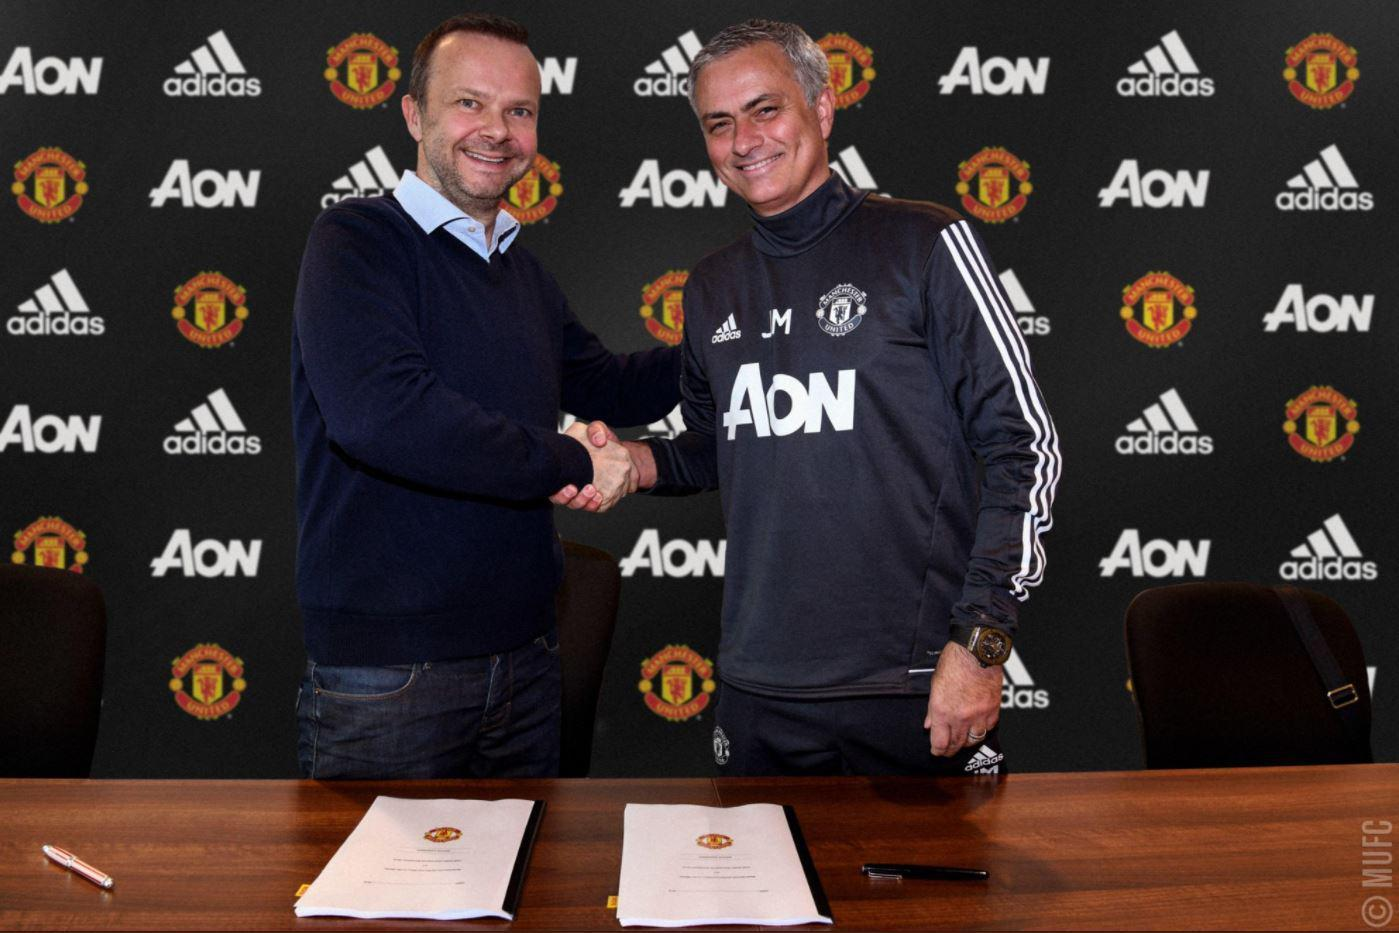 Jose Mourinho signs new Manchester United contract to remain at Old Trafford until 2020 to end speculation over his future